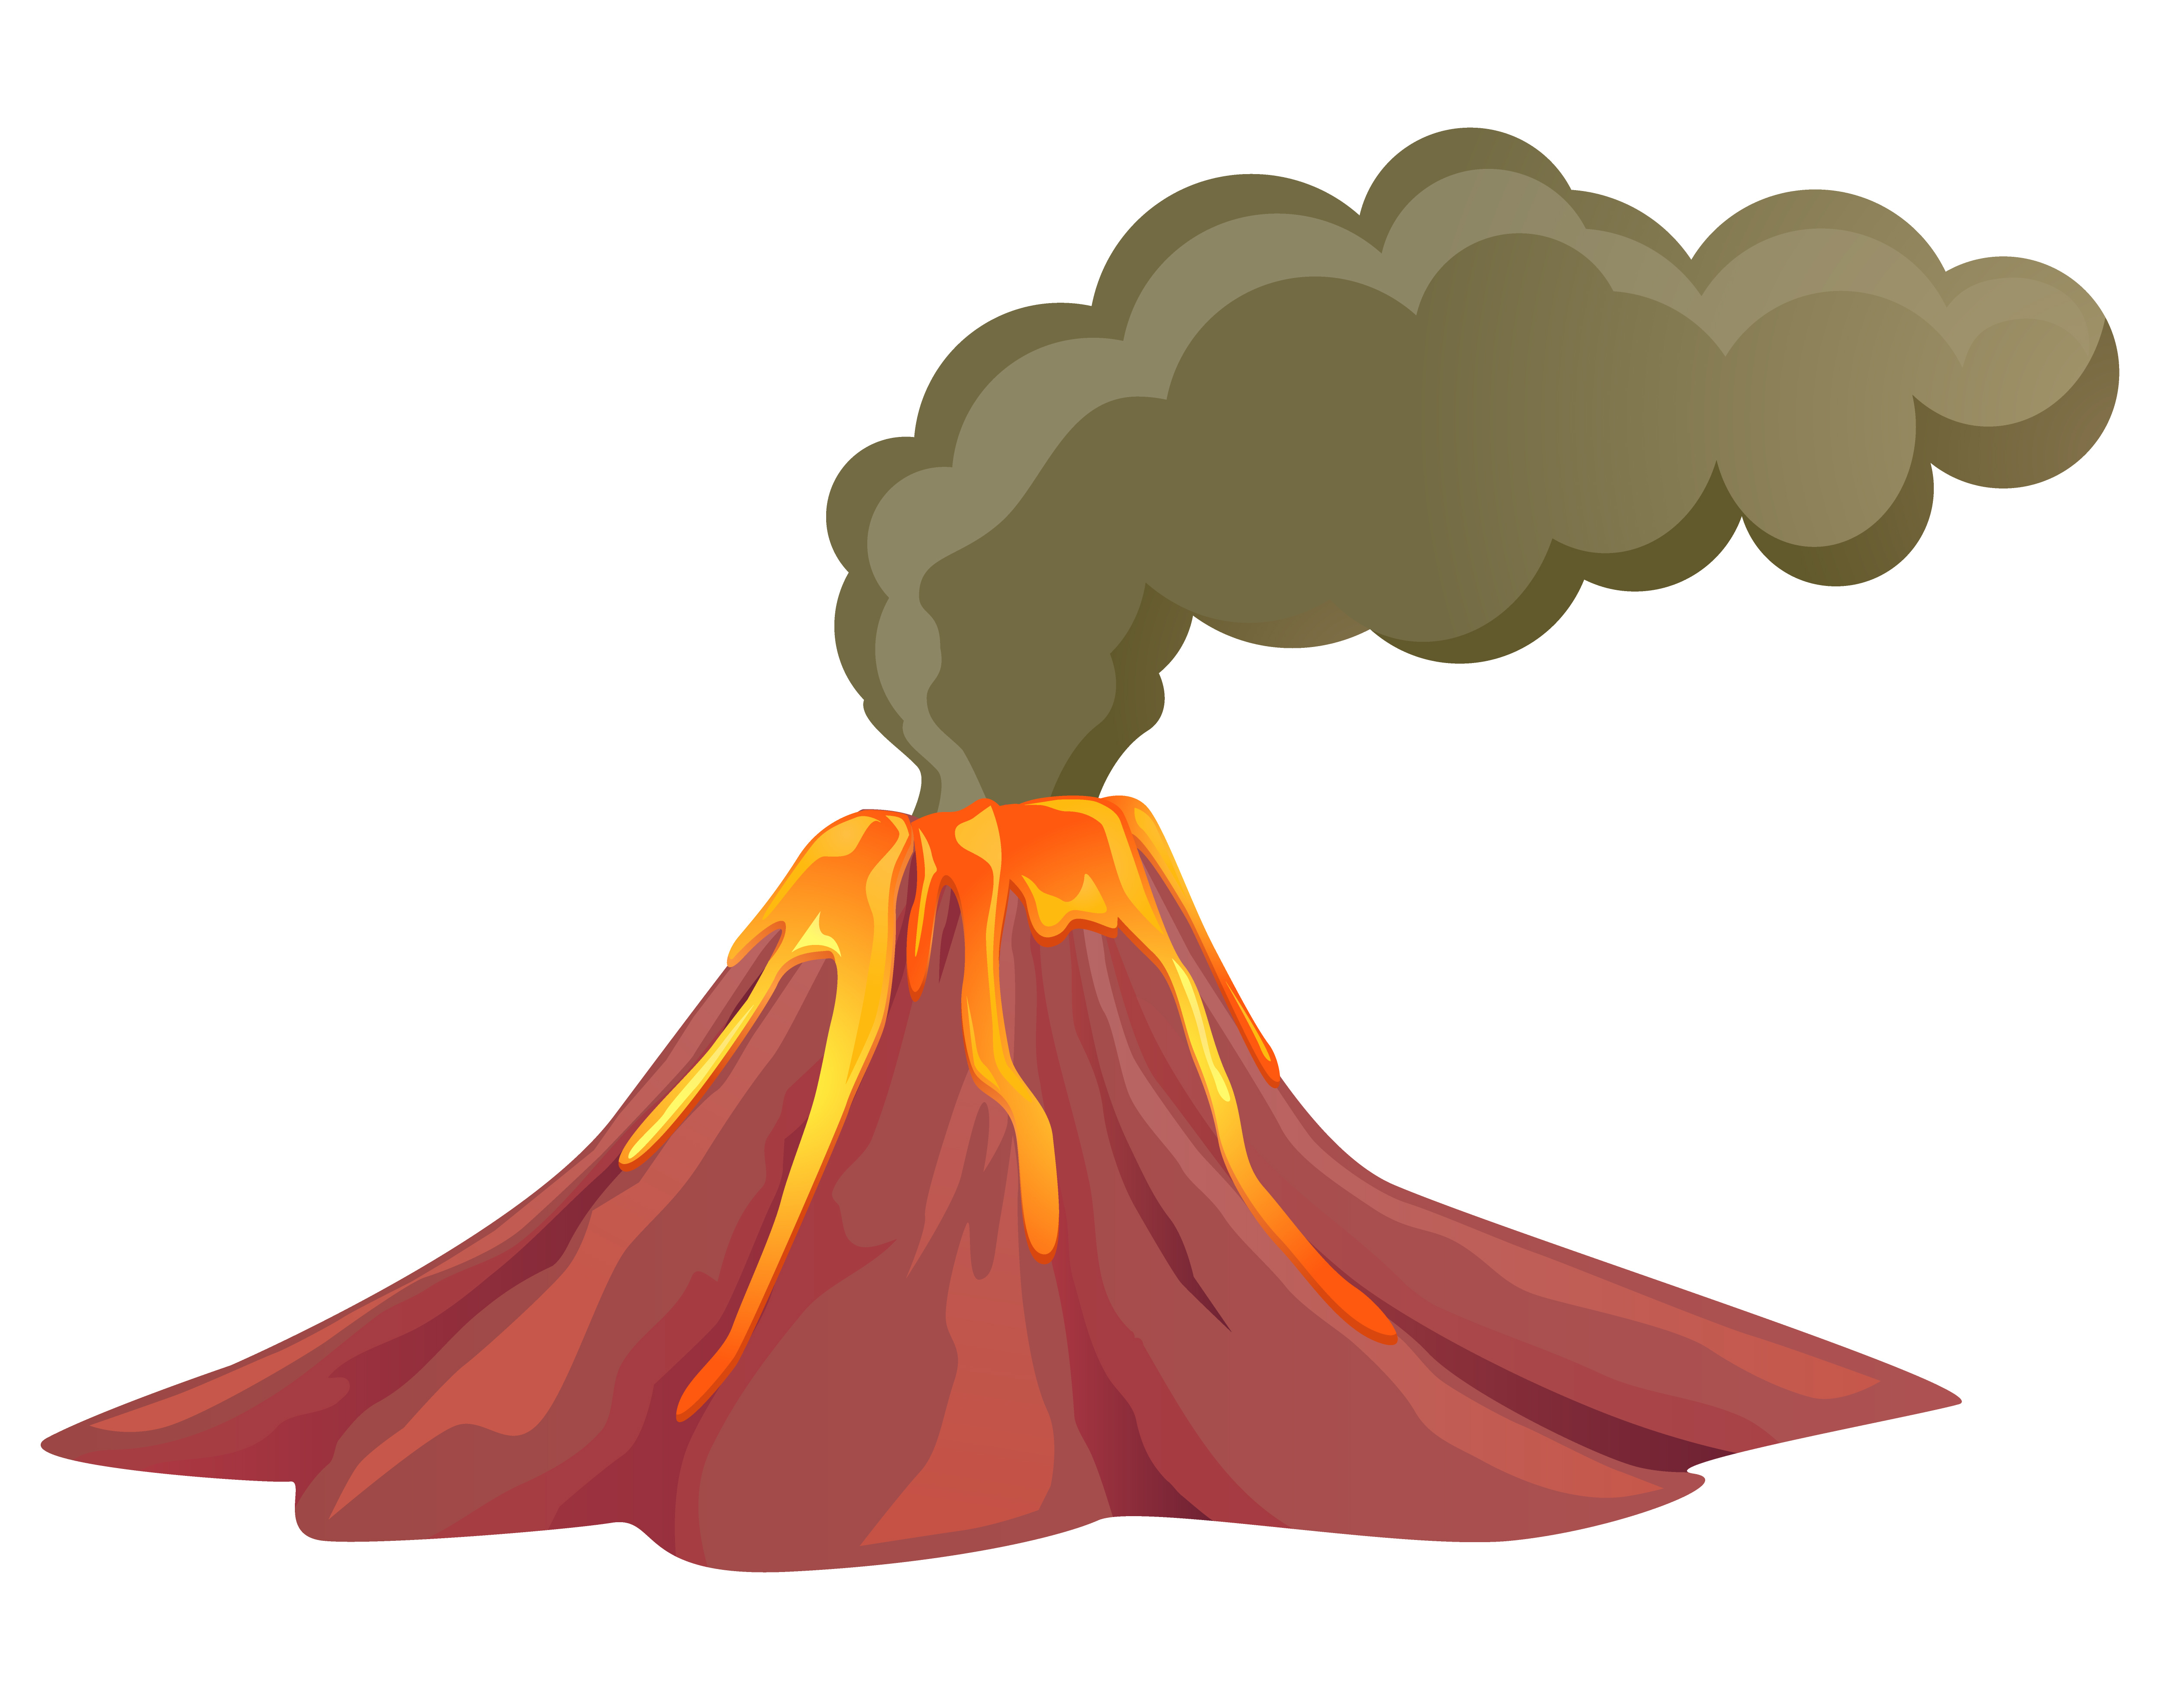 Smoking volcano with lava flowing down